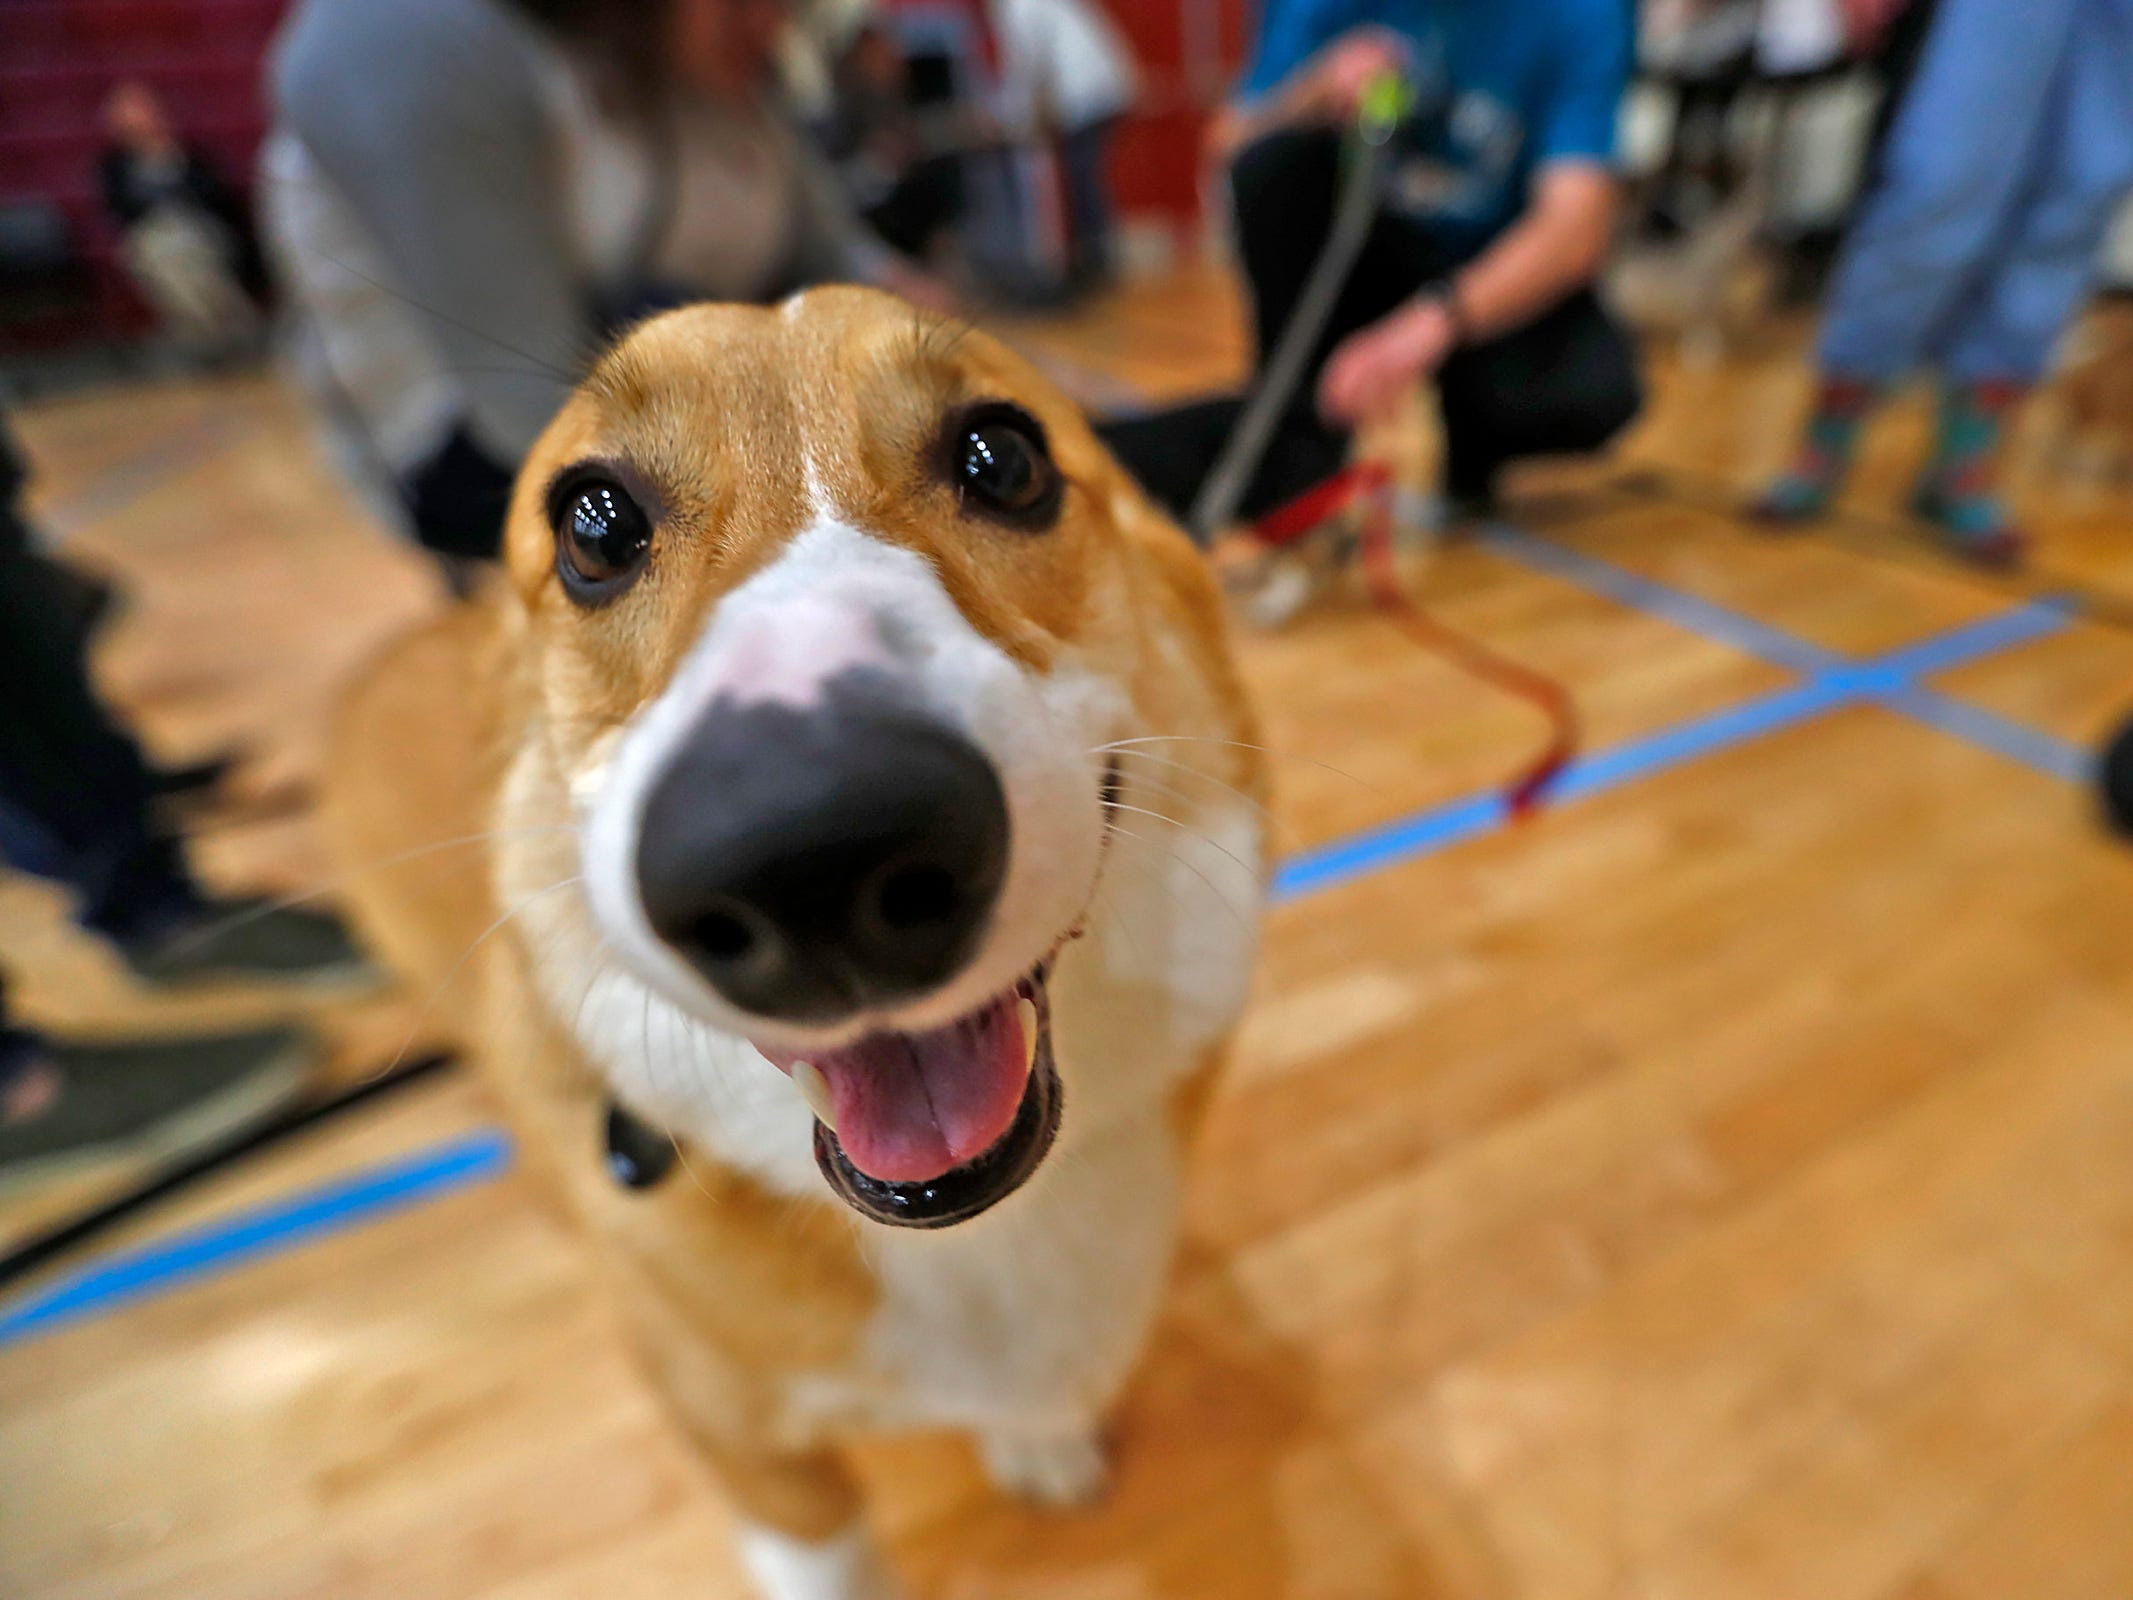 Curious Corgis were all smiles at the Indianapolis Corgi Limbo & Costume Contest at IUPUI, Sunday, April 14, 2019.  The event benefits children orphaned by HIV/AIDS in eSwatini, Africa.  It is presented by the Give Hope, Fight Poverty IUPUI chapter.